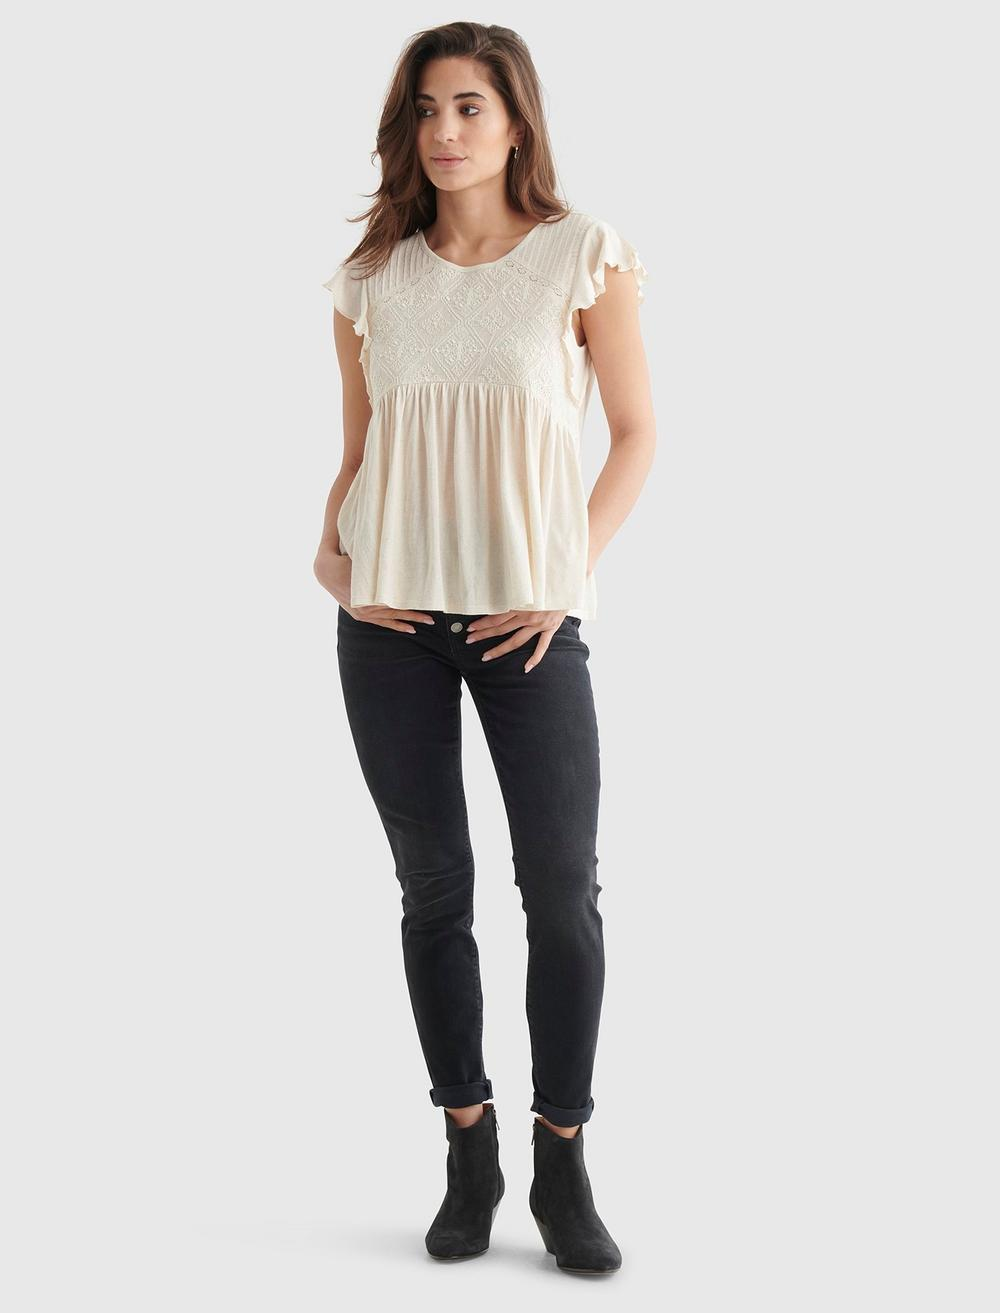 SHORT SLEEVE EMBROIDERED DOLMAN TOP, image 2